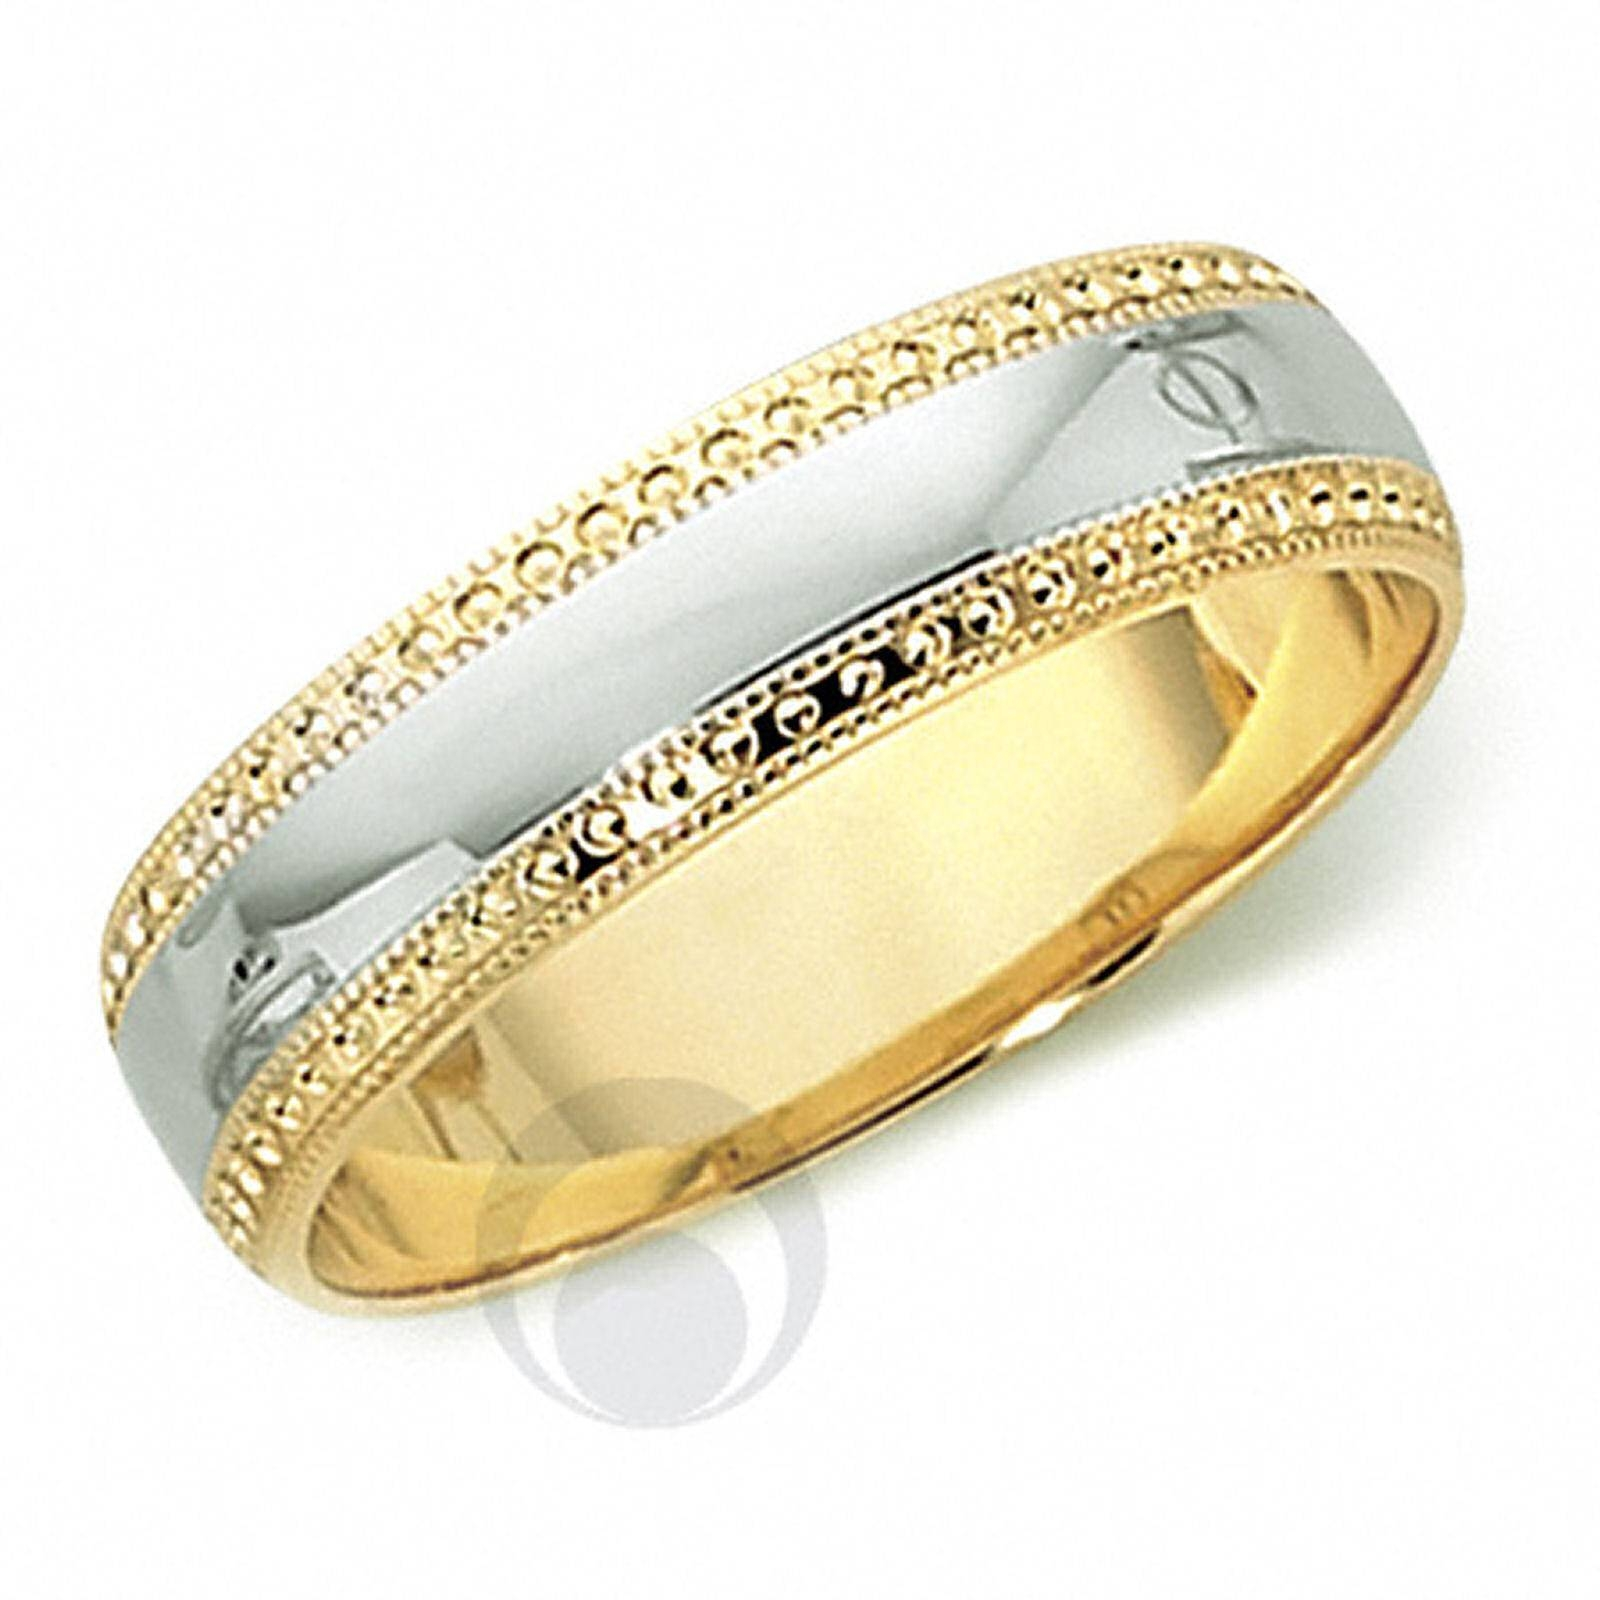 18Ct Gold & Platinum Wedding Ring Wedding Dress From The Platinum Intended For Platinum And Gold Wedding Rings (View 1 of 15)